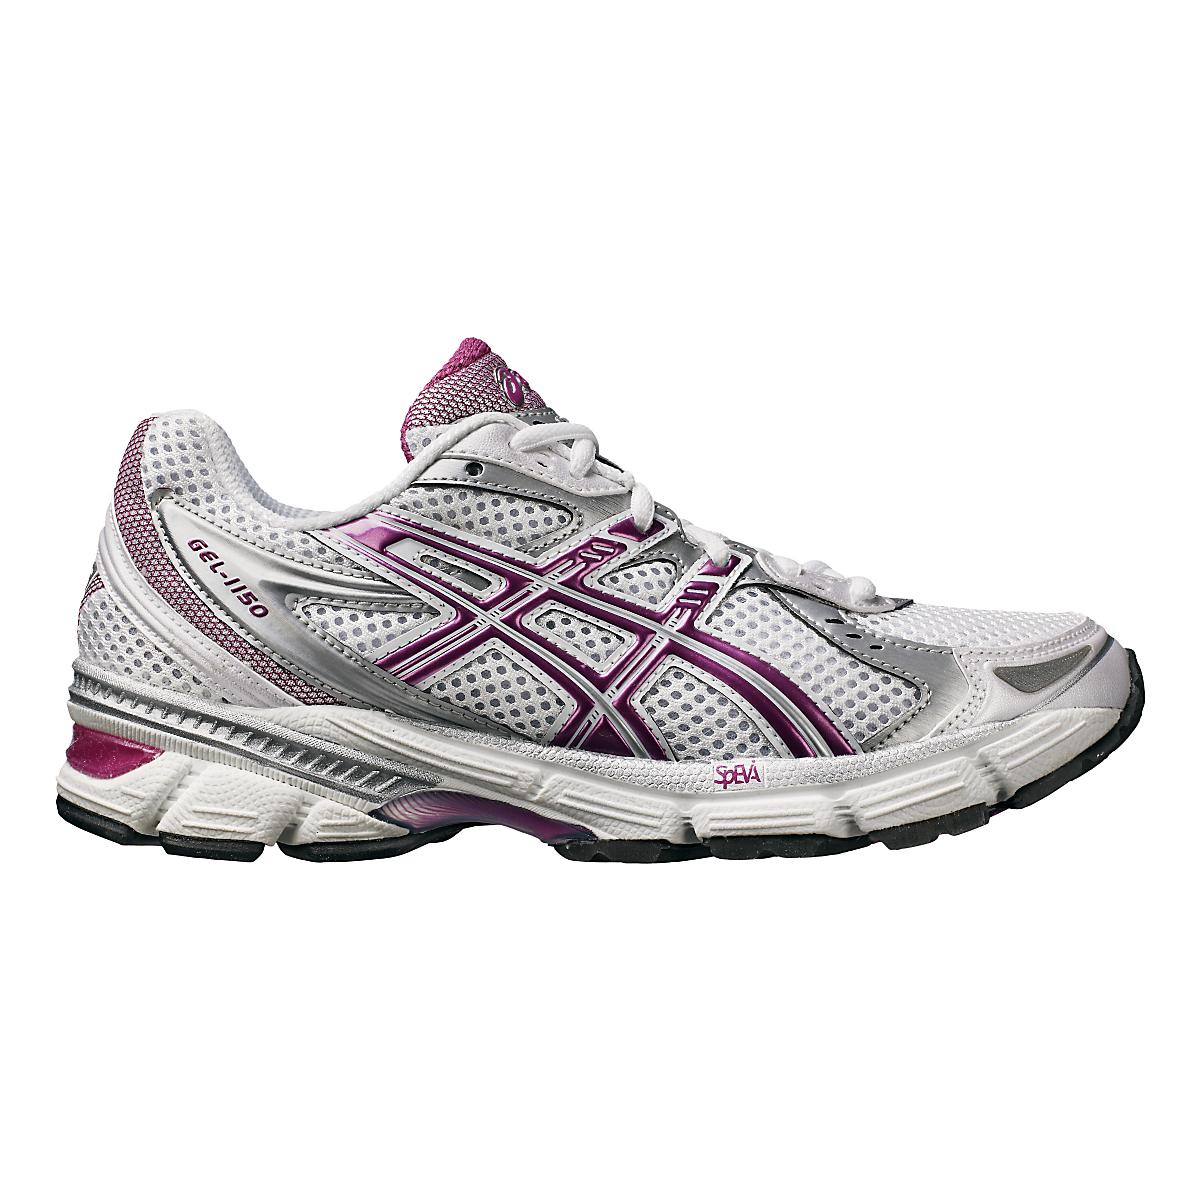 Womens ASICS GEL-1150 Running Shoe at Road Runner Sports